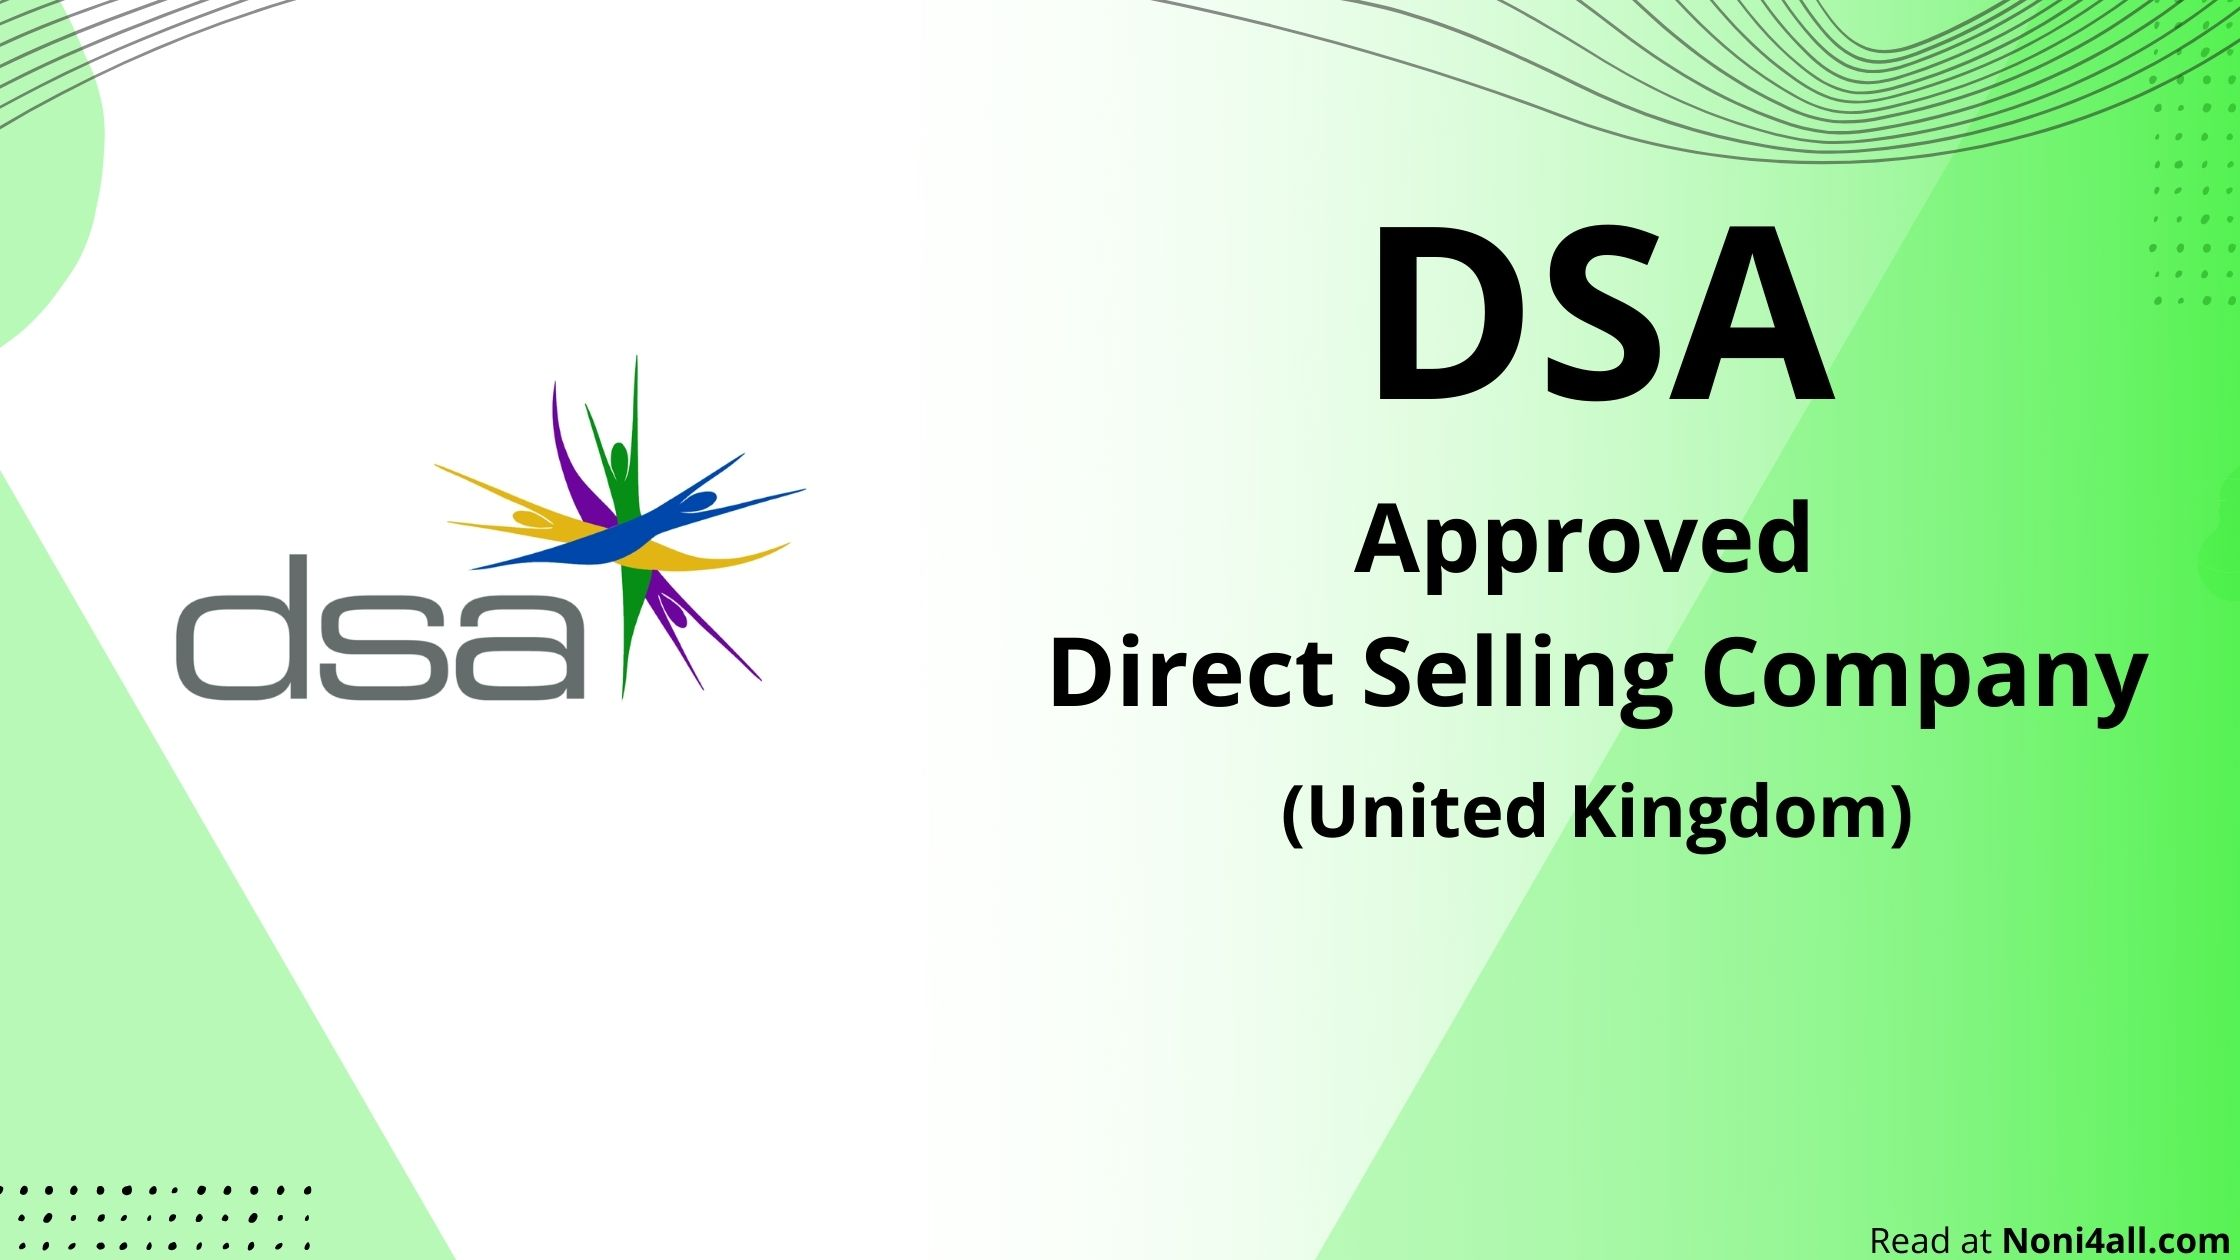 Direct Selling Companies In The UK